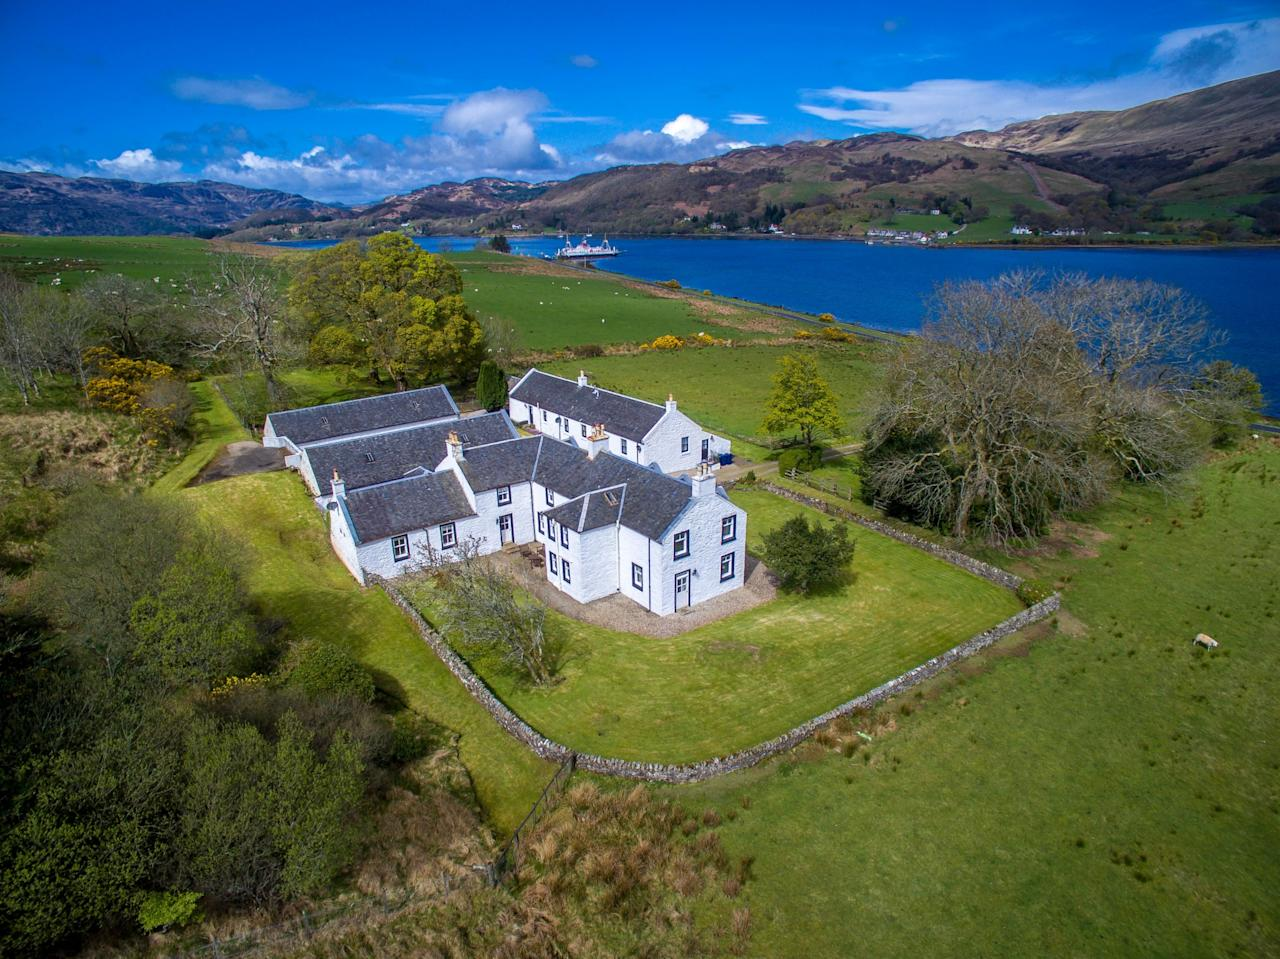 <p>Rhubodach on the north-east coast of Bute, was bought by much-loved actor and film-maker, Lord Richard Attenborough and his wife, Sheila, in the 1980s to be used as a restful bolthole away from their busy working lives. (Savills/SWNS) </p>